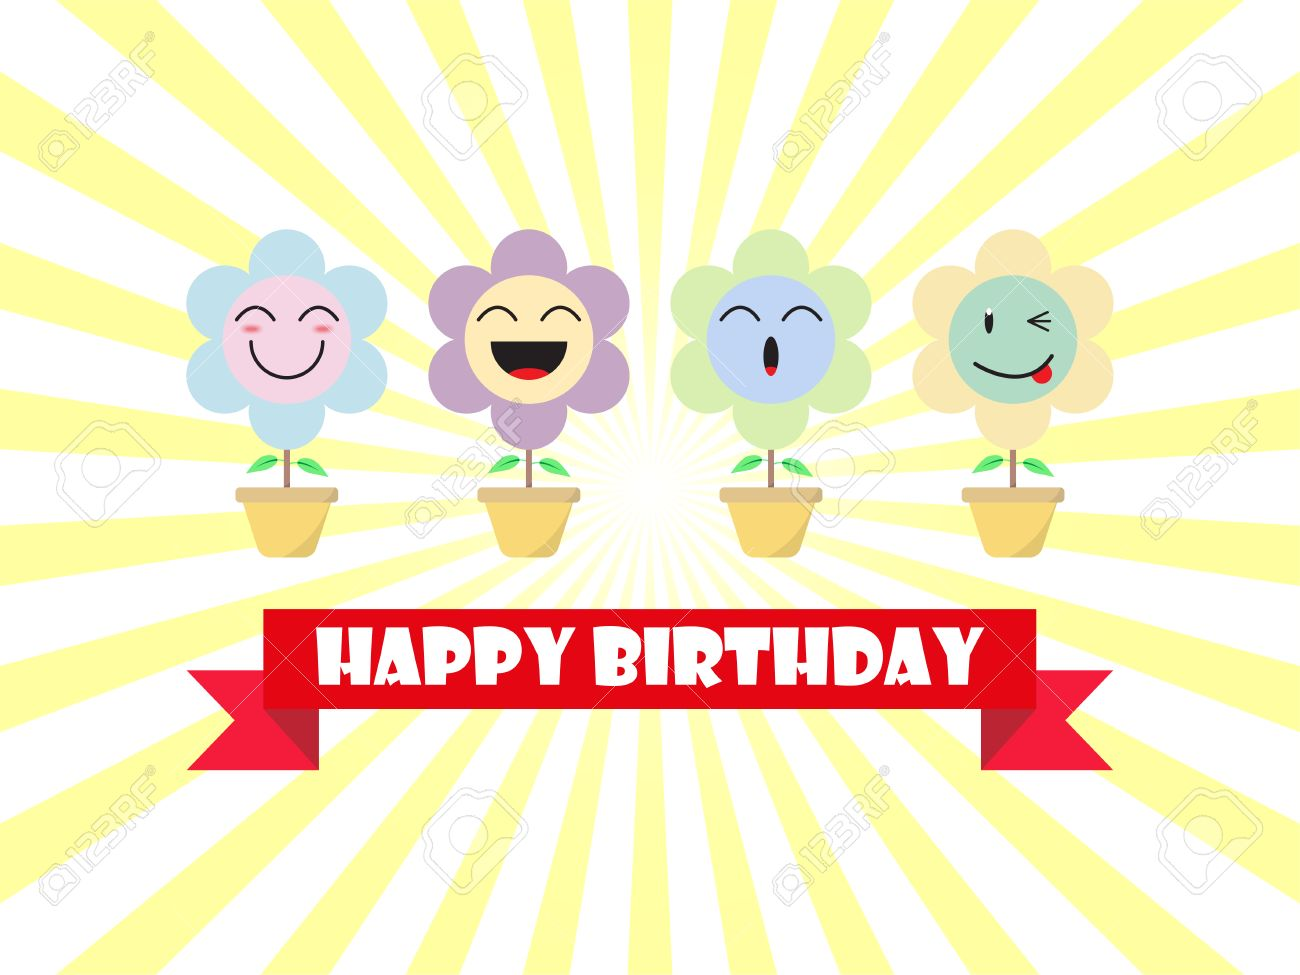 Cute Pastel Flower Emoji Happy Birthday Card Designed As 4 Cartoon Facial Expressions Smile Laugh Ho Wink Useful For Blessing